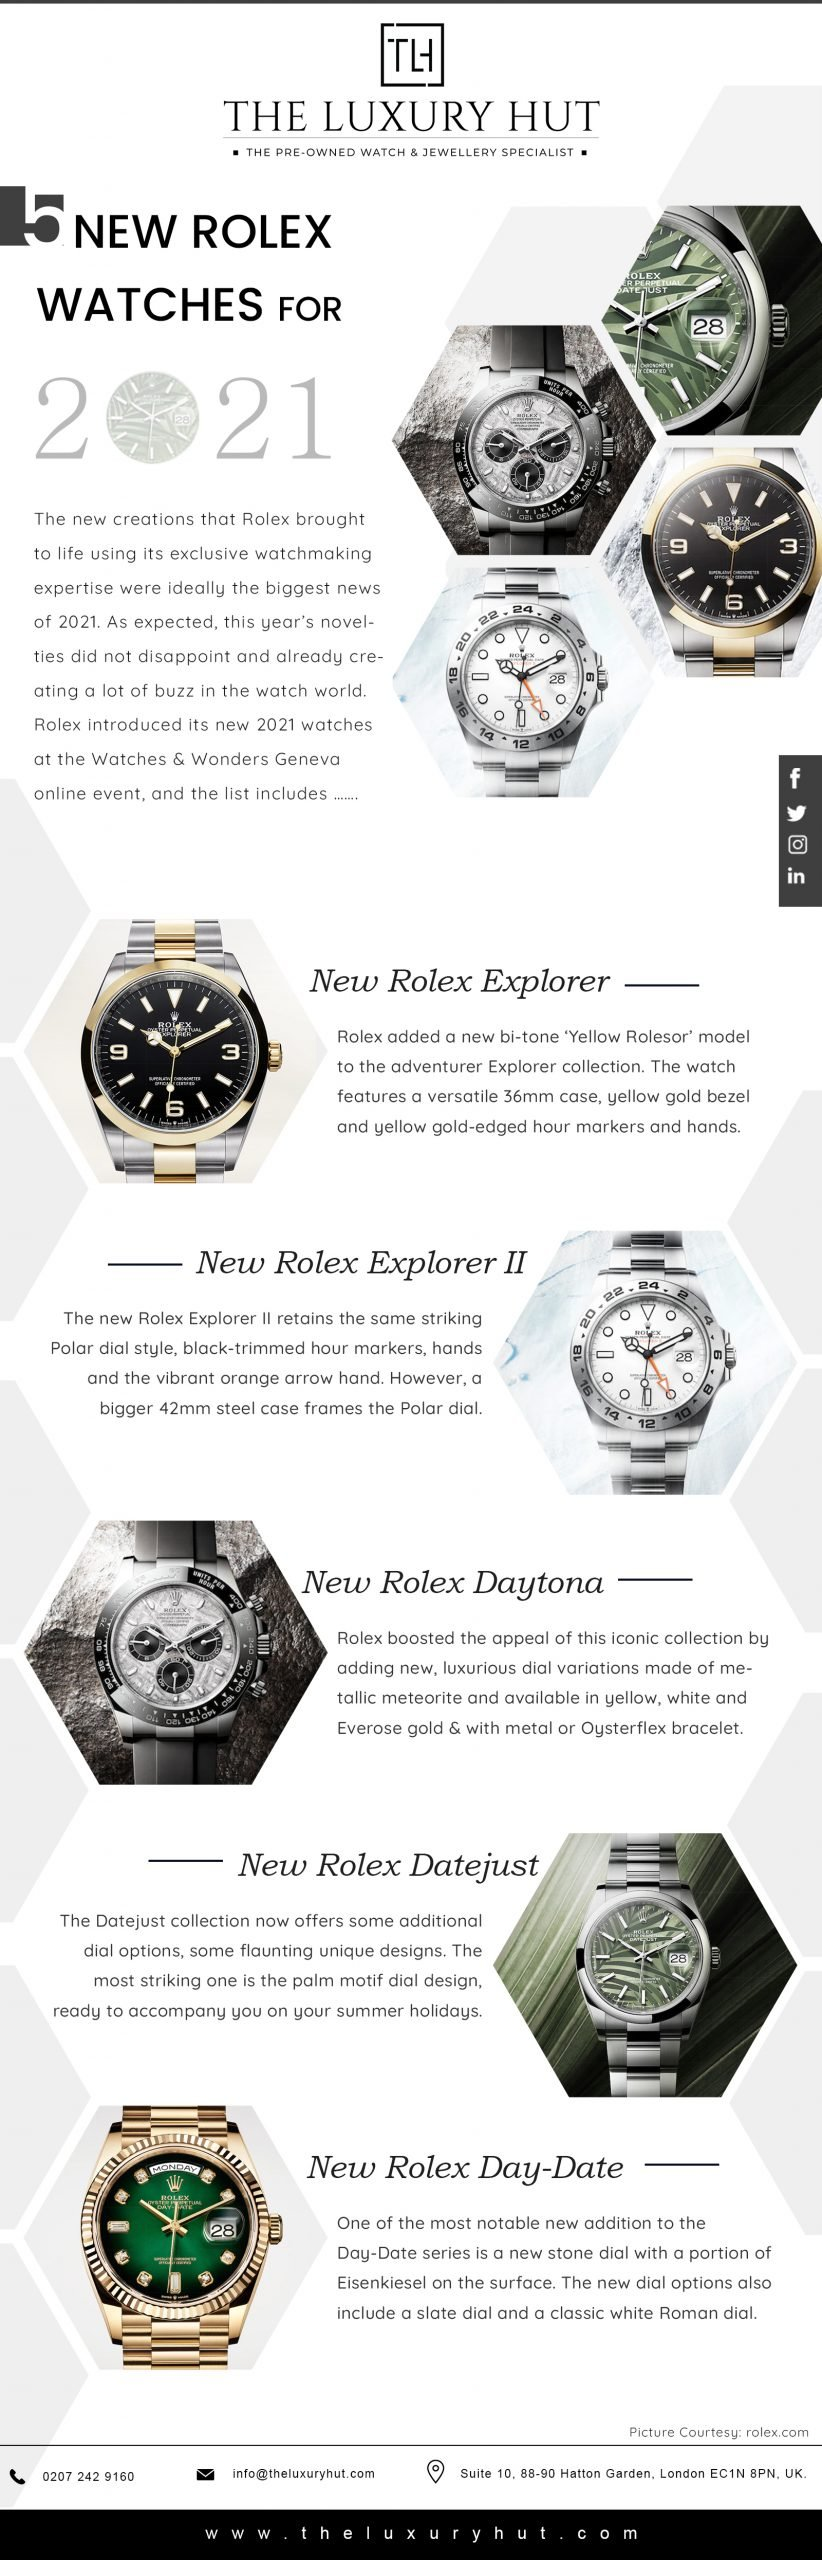 5 new rolex watches 2021